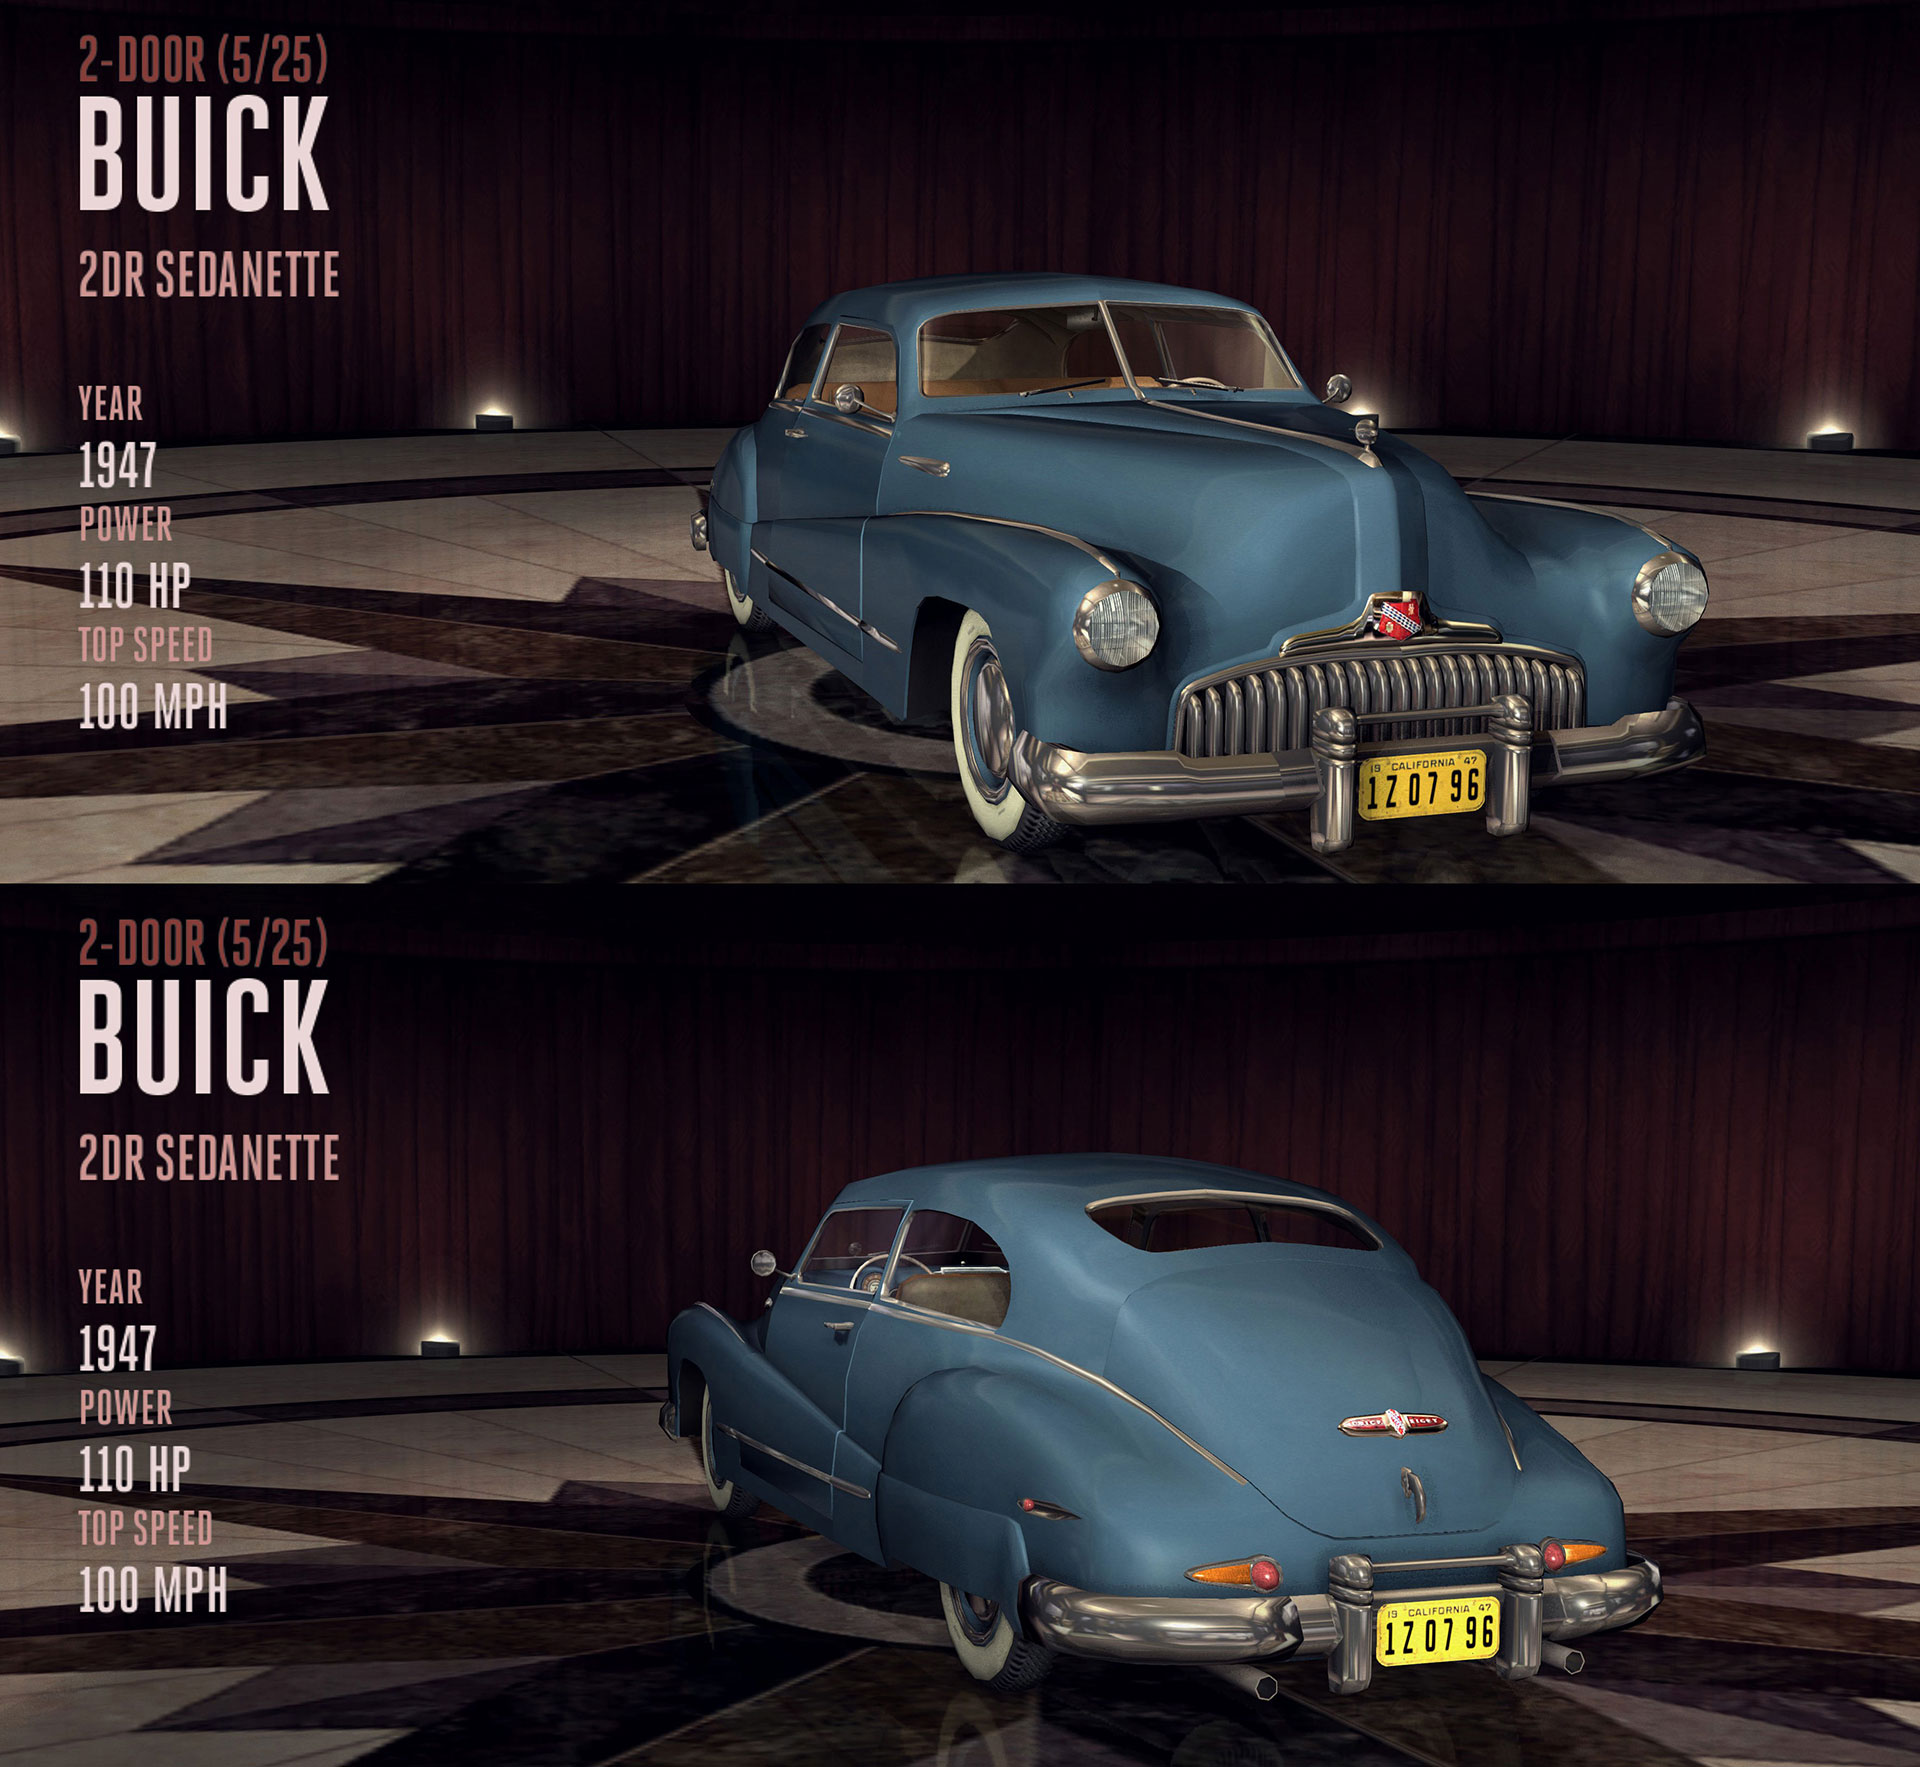 1941 Buick 40 Special: Buick 2DR Sedanette